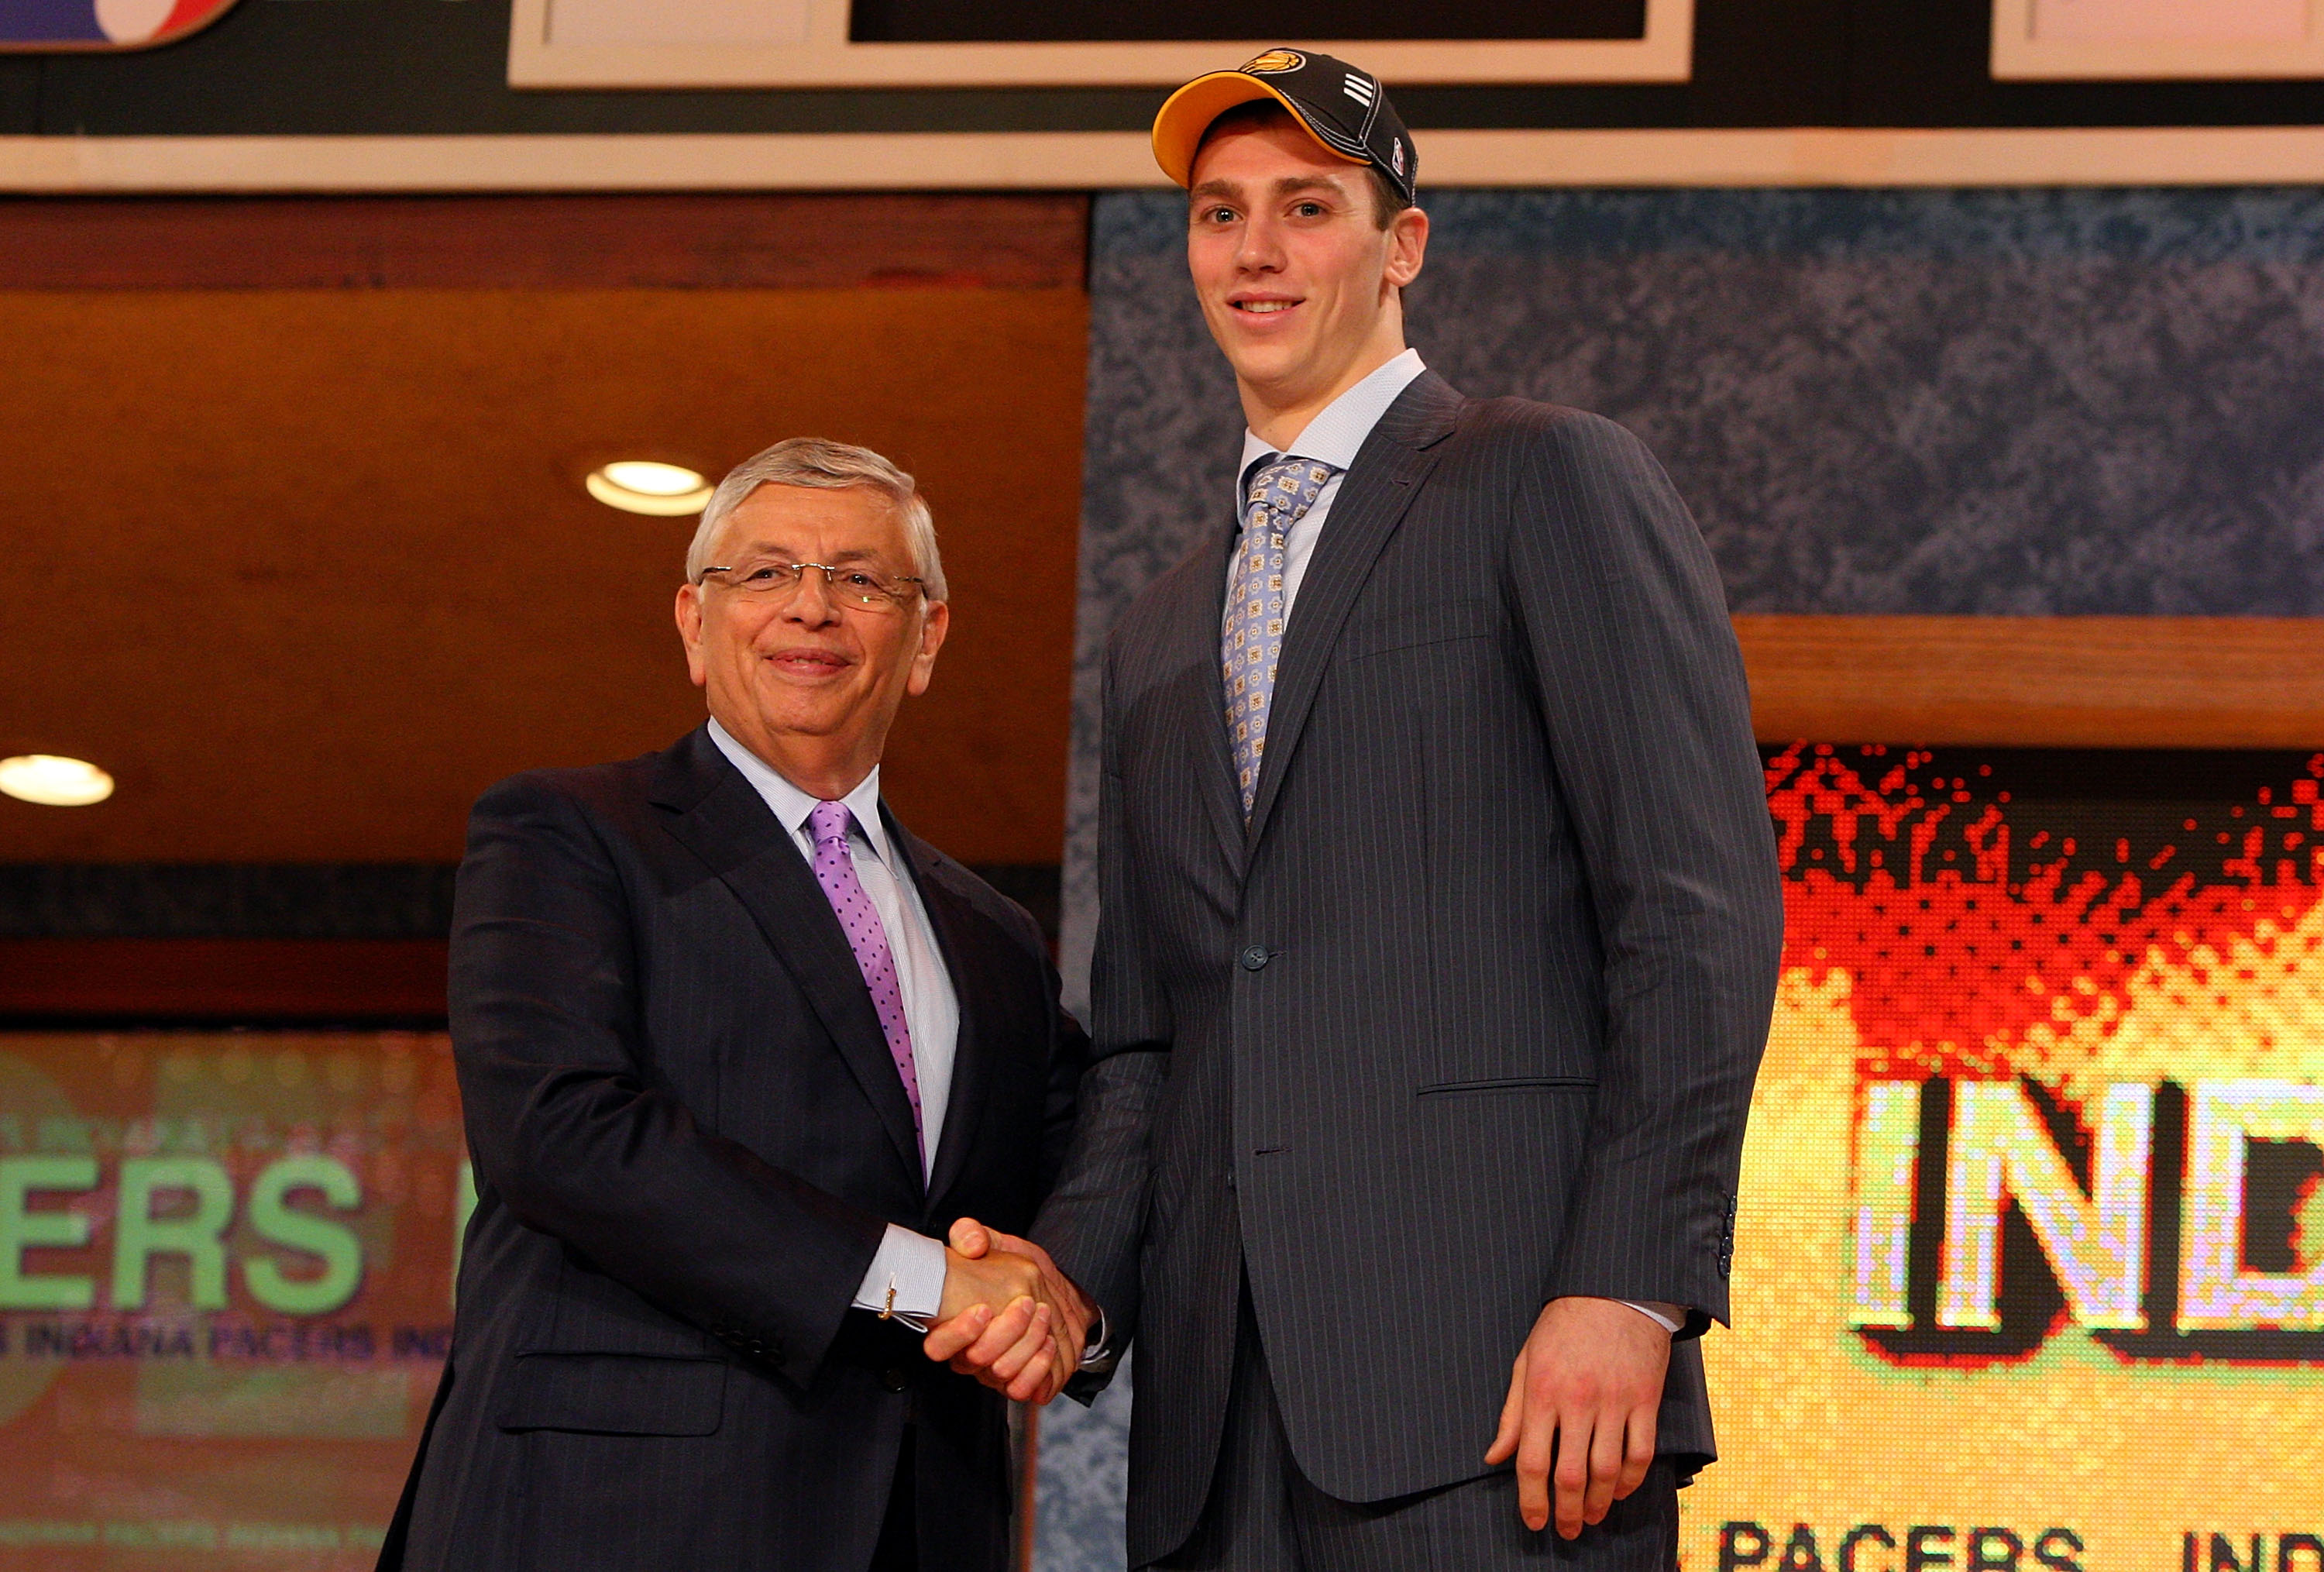 NEW YORK - JUNE 25:  NBA Commissioner David Stern poses for a photograph with the thirteenth overall draft pick by the Indiana Pacers,  Tyler Hansbrough during the 2009 NBA Draft at the Wamu Theatre at Madison Square Garden June 25, 2009 in New York City.